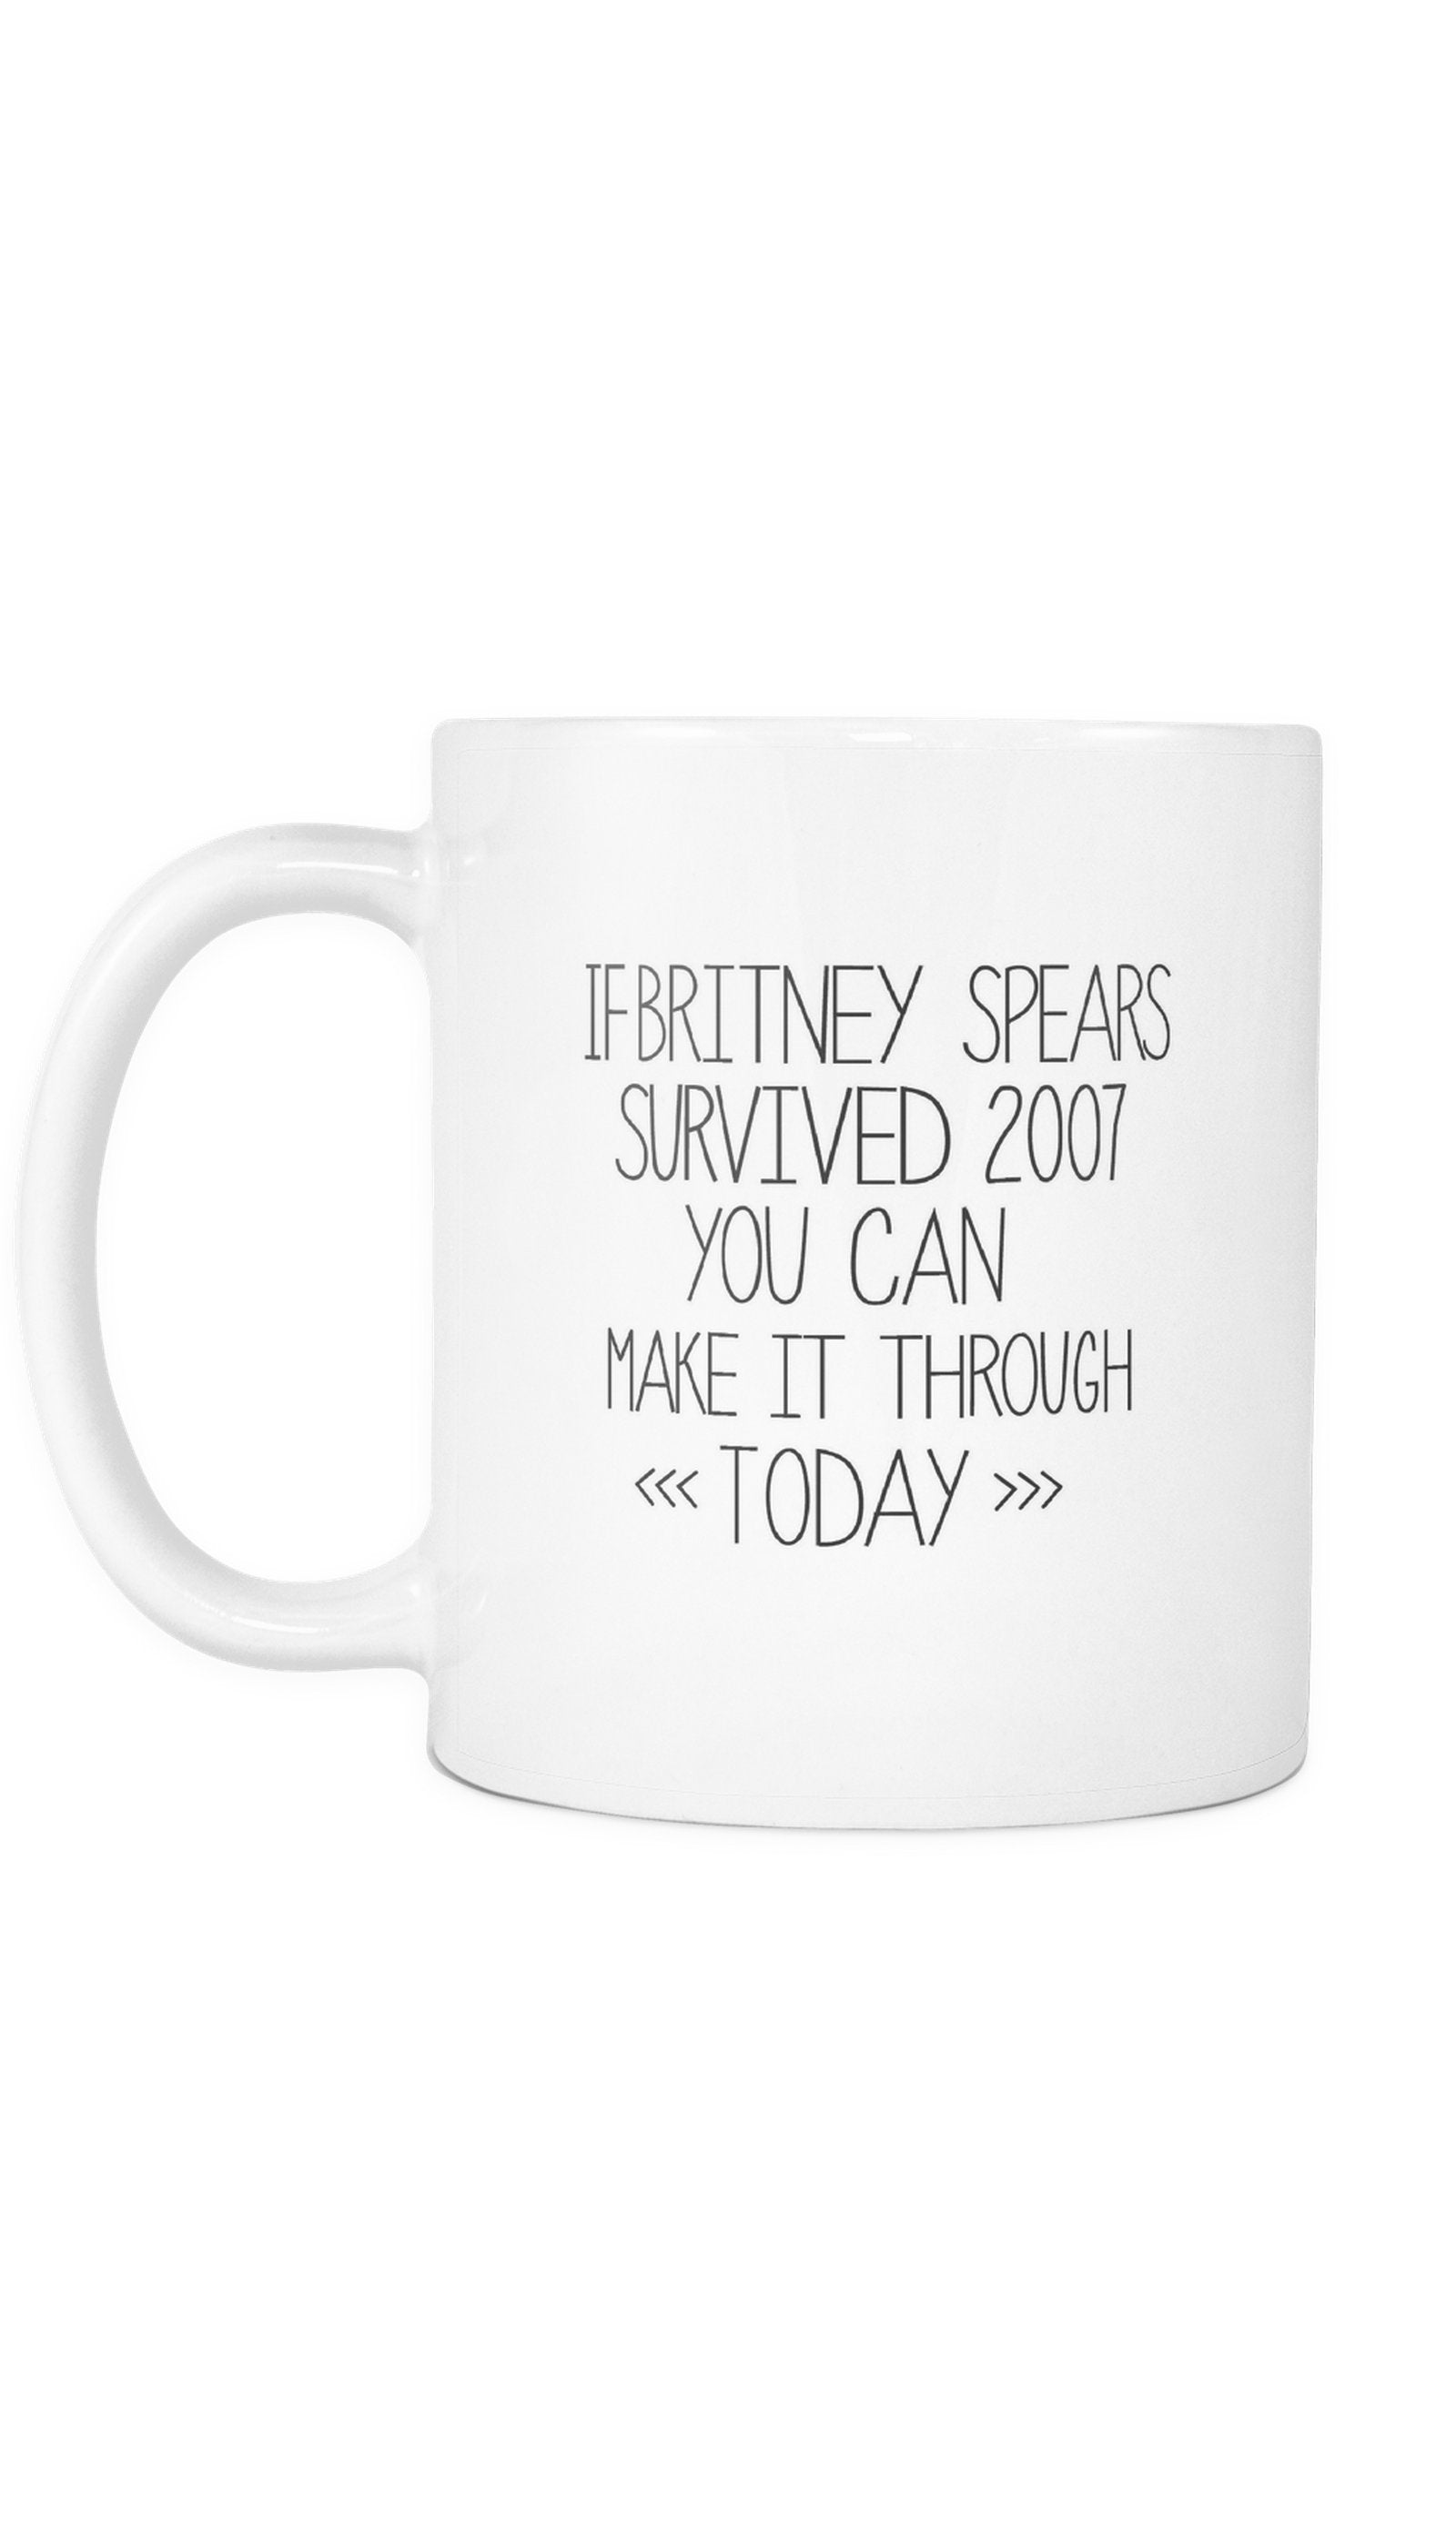 If Britney Spears Survived 2007 You Can Make It Through Today White Mug | Sarcastic Me